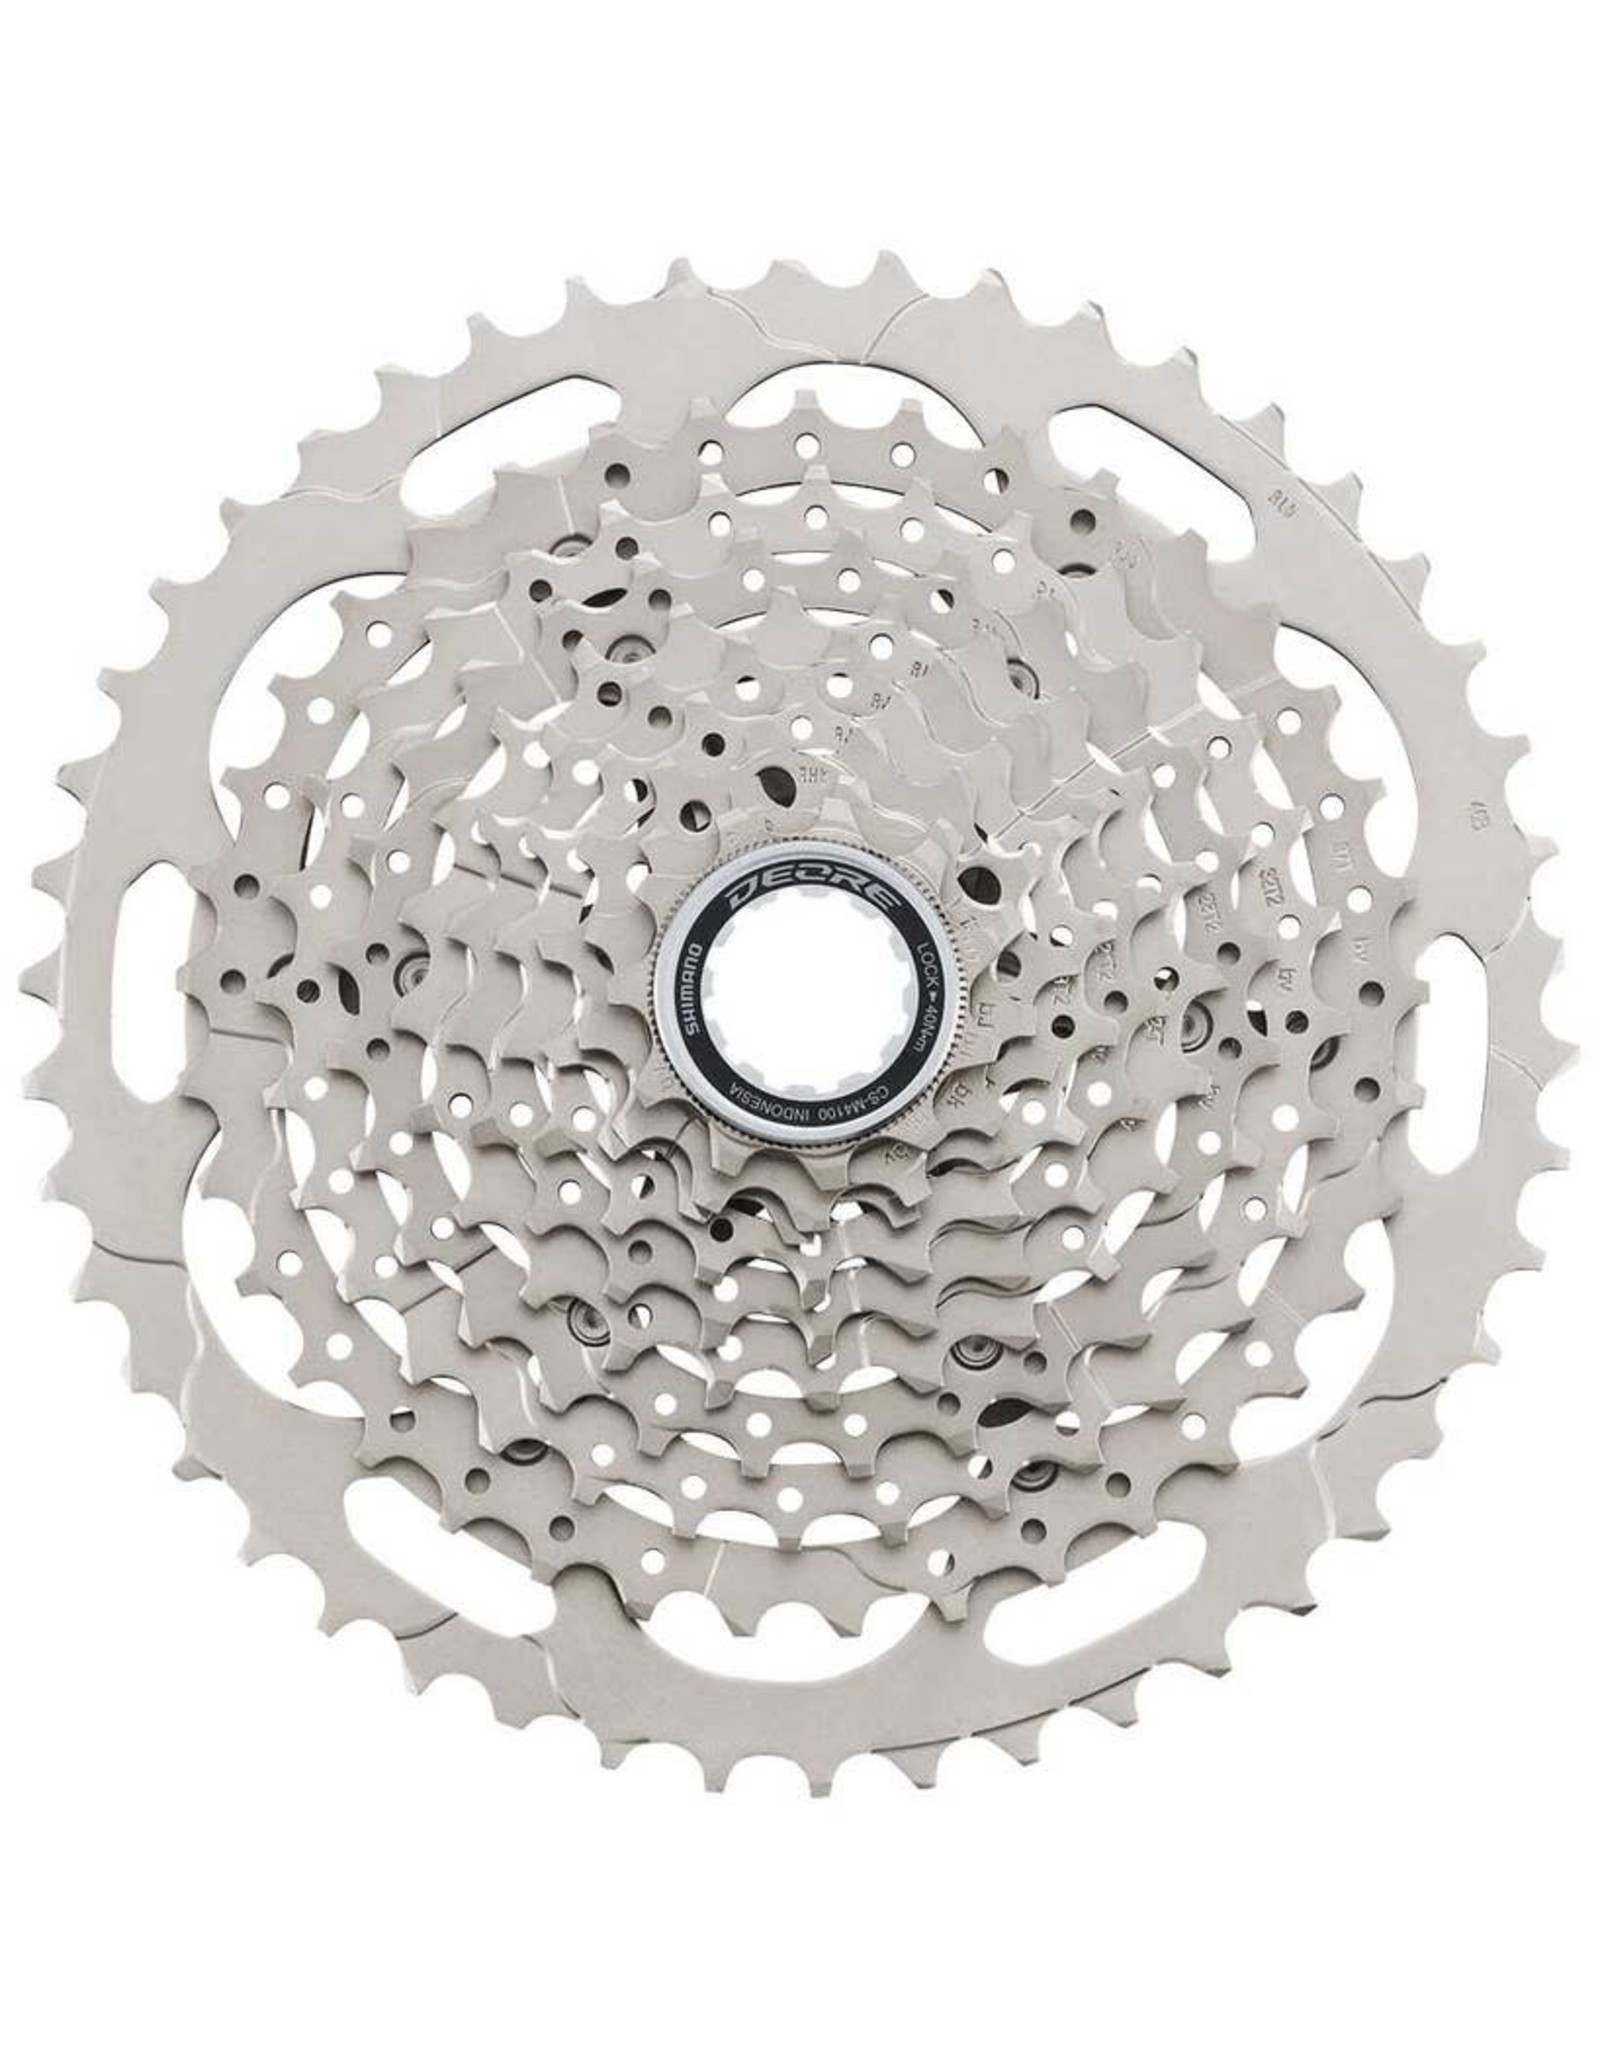 Shimano Shimano Deore CS-M4100-10 Cassette - 10-Speed, 11-46t, Silver